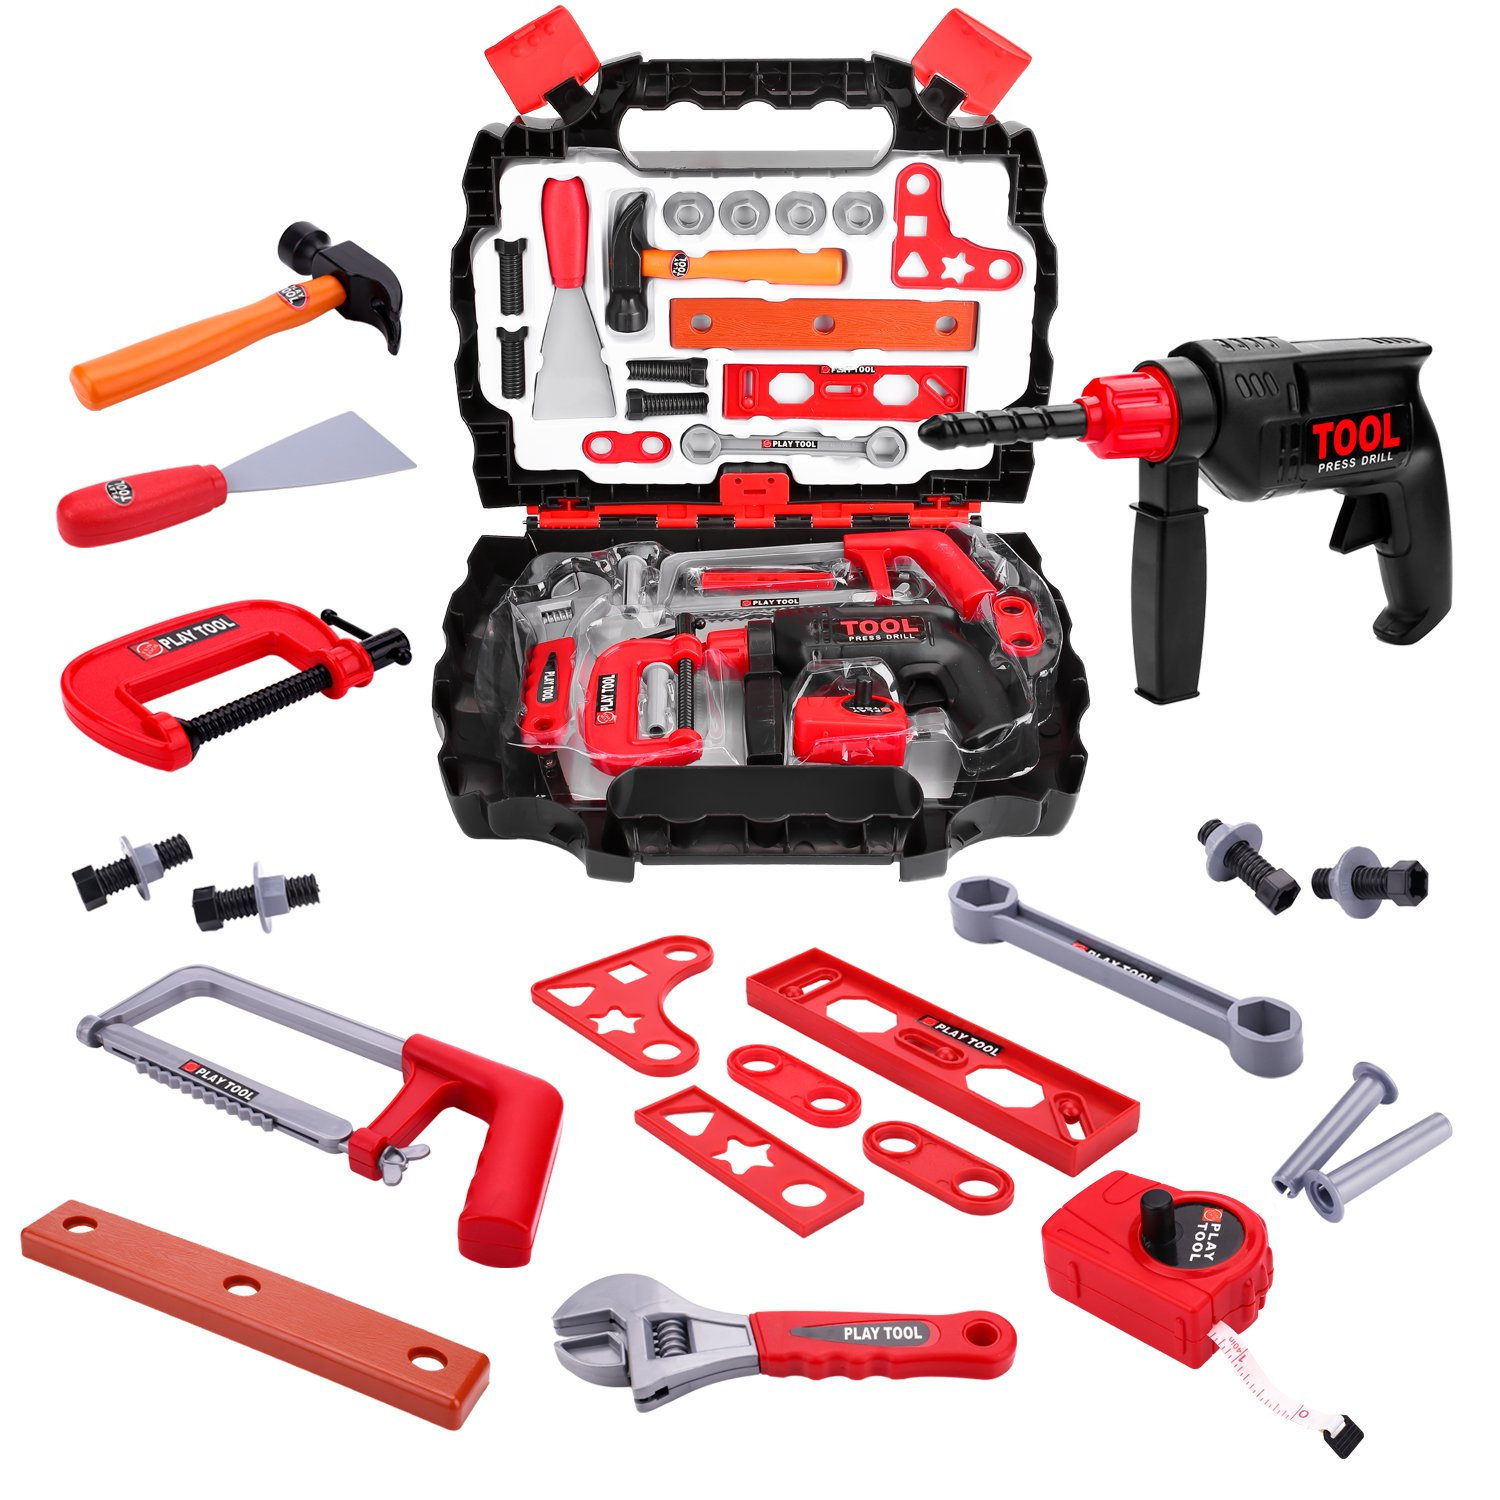 27 Pieces Kids Pretend Play Tool Kit, Boys Construction Toy Tool Sets in Sturdy Case for Toddlers